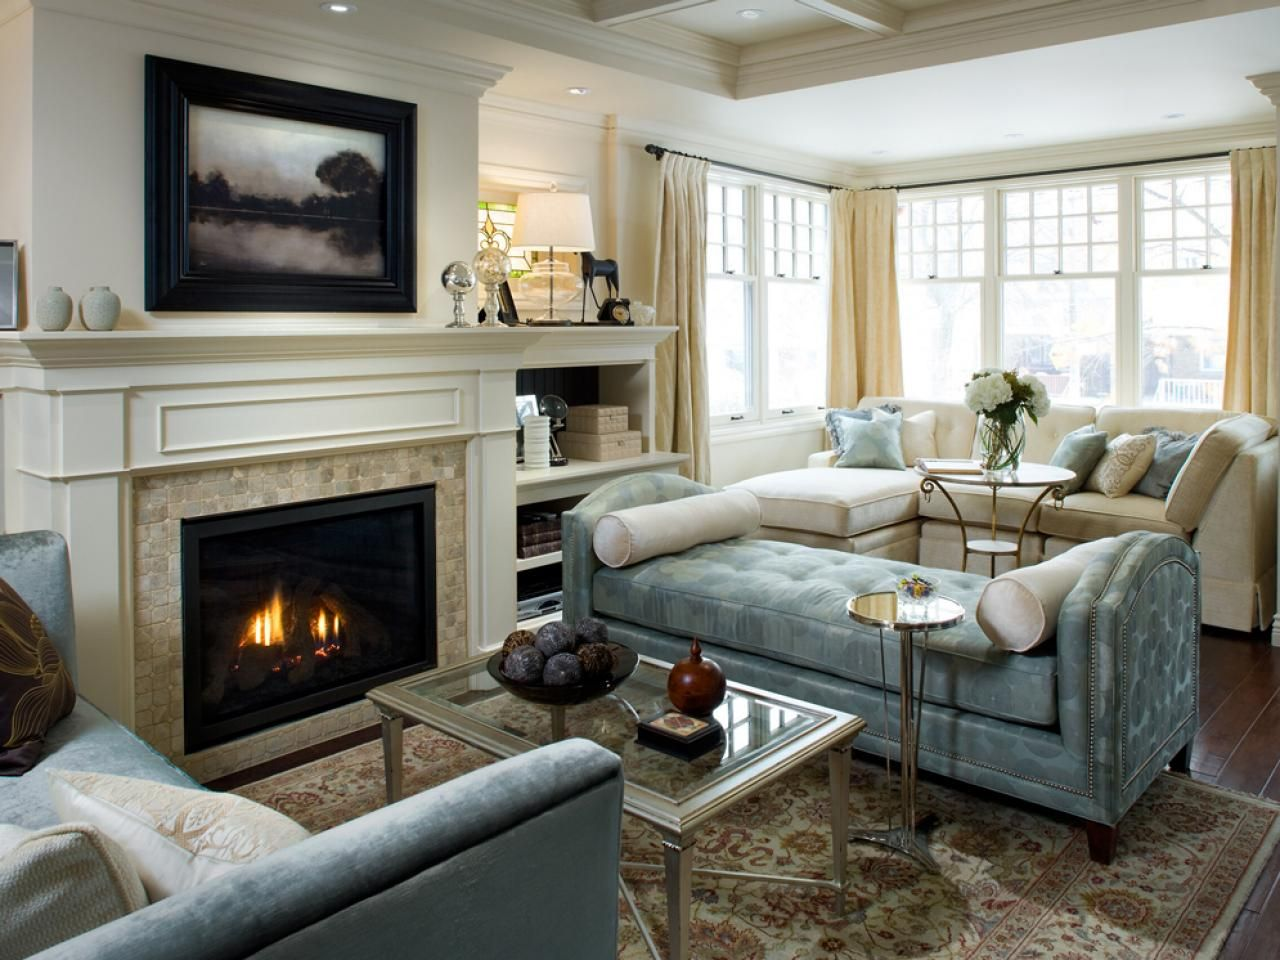 9 Fireplace Design Ideas From Candice Olson | Living room ...